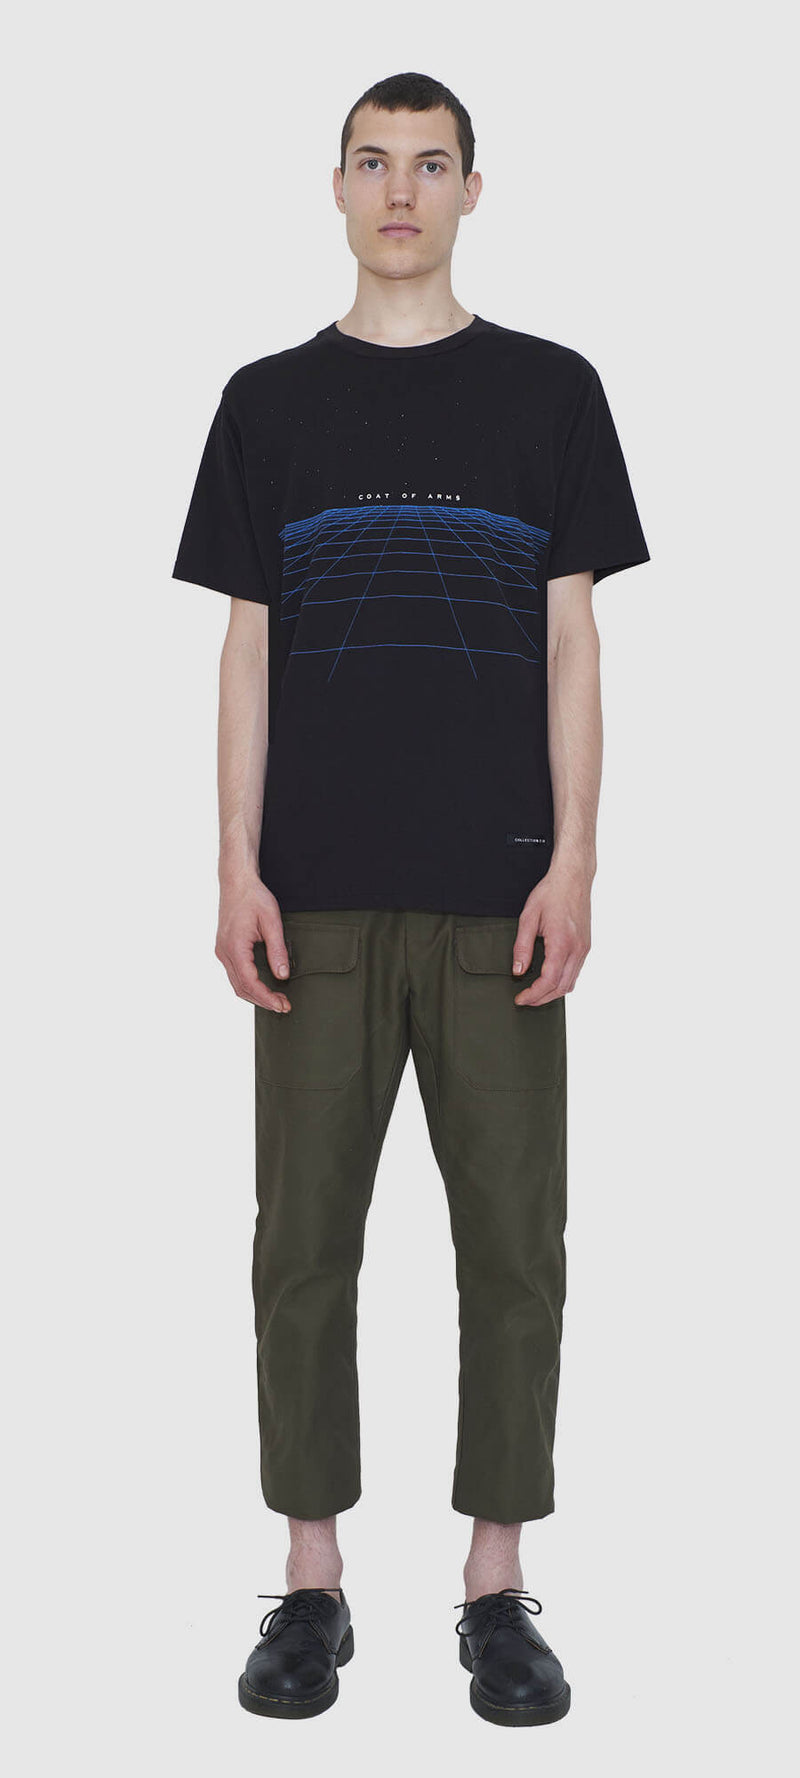 Black CyberGrid T-Shirt